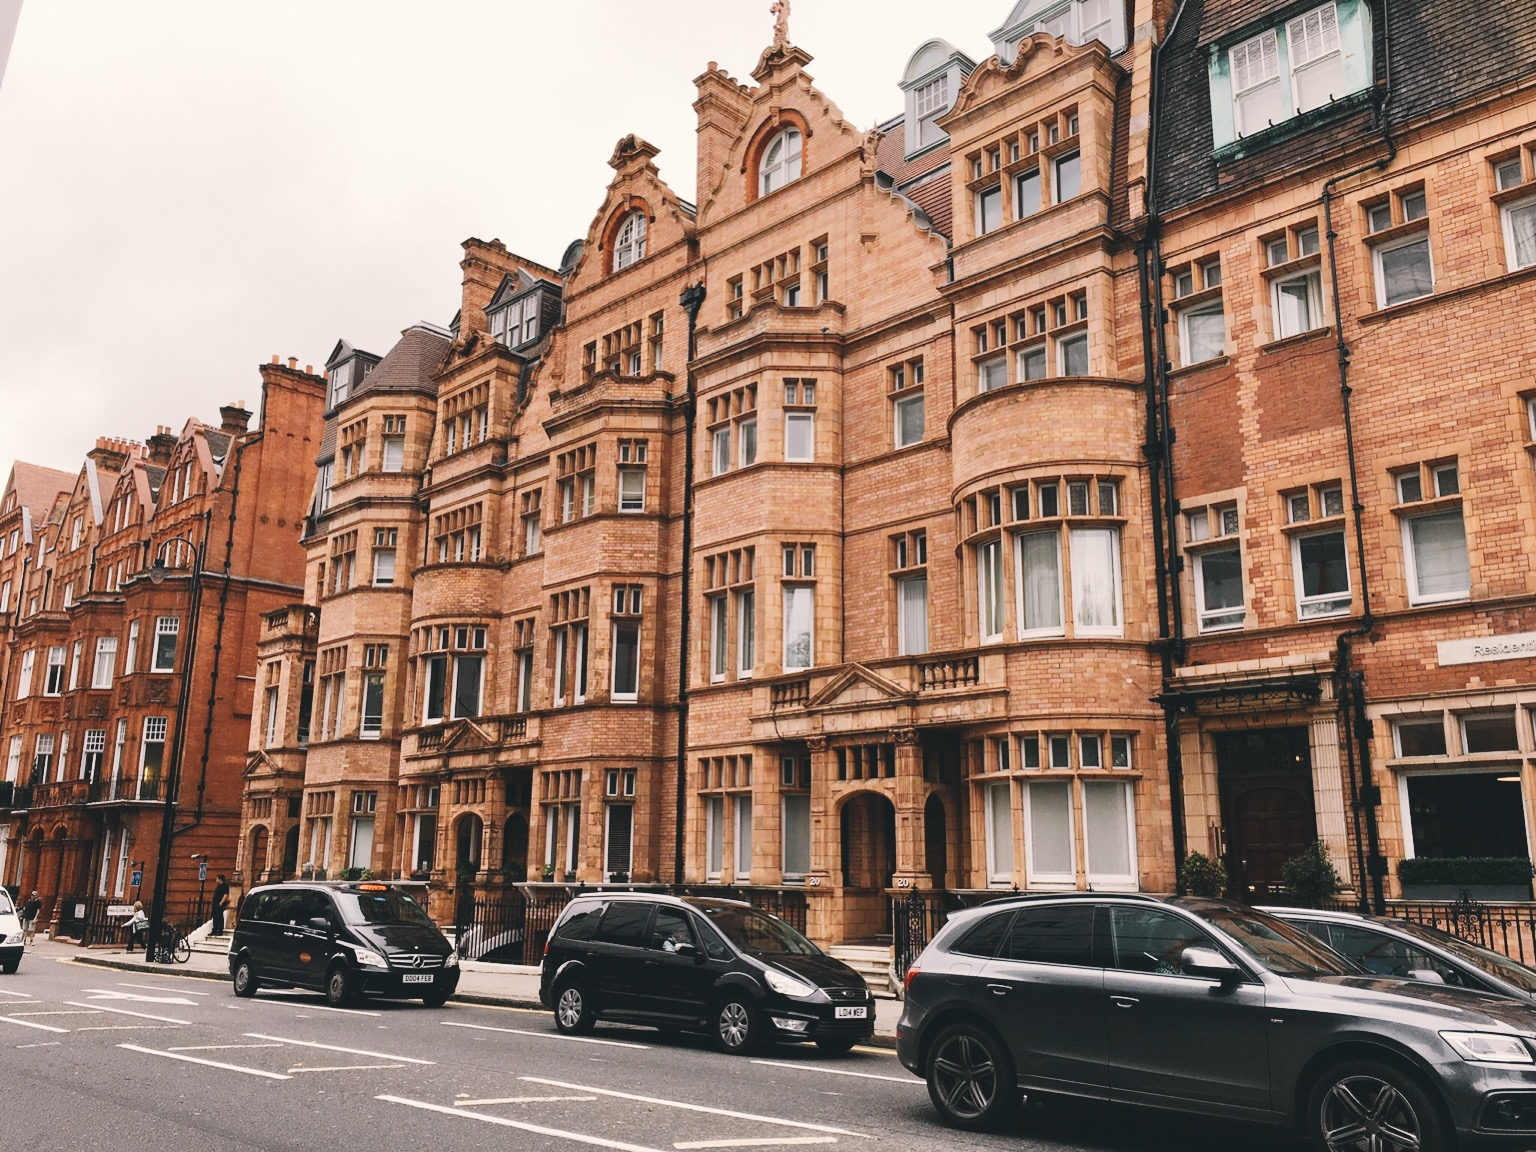 Brick buildings and taxi cabs in London